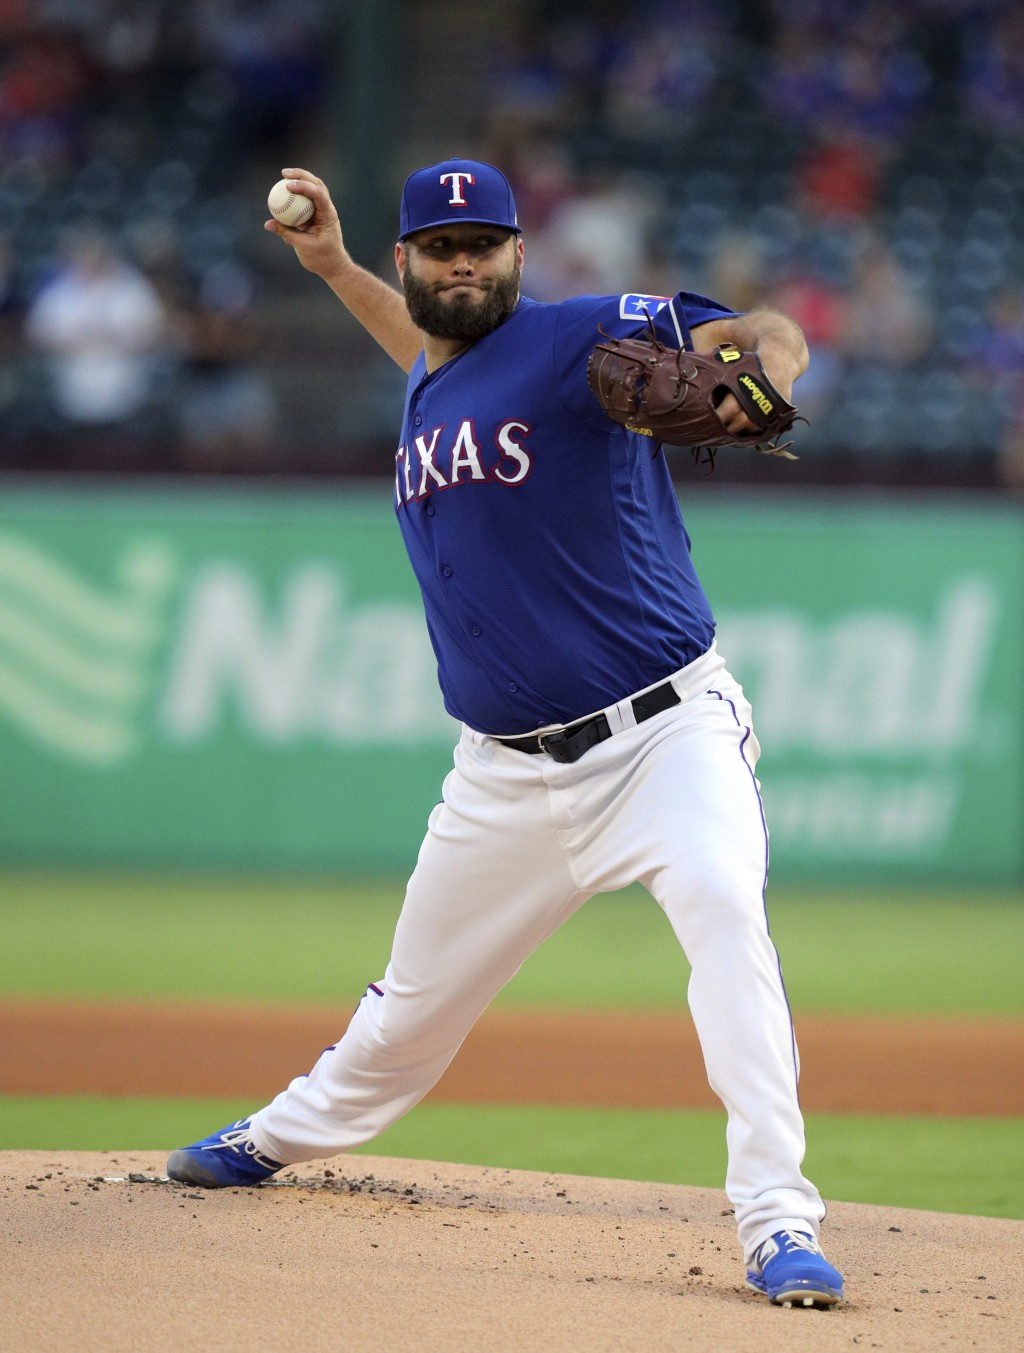 Texas Rangers starter Lance Lynn (35) delivers a pitch during the first inning of a baseball game against the Tampa Bay Rays Tuesday, Sept. 10, 2019,